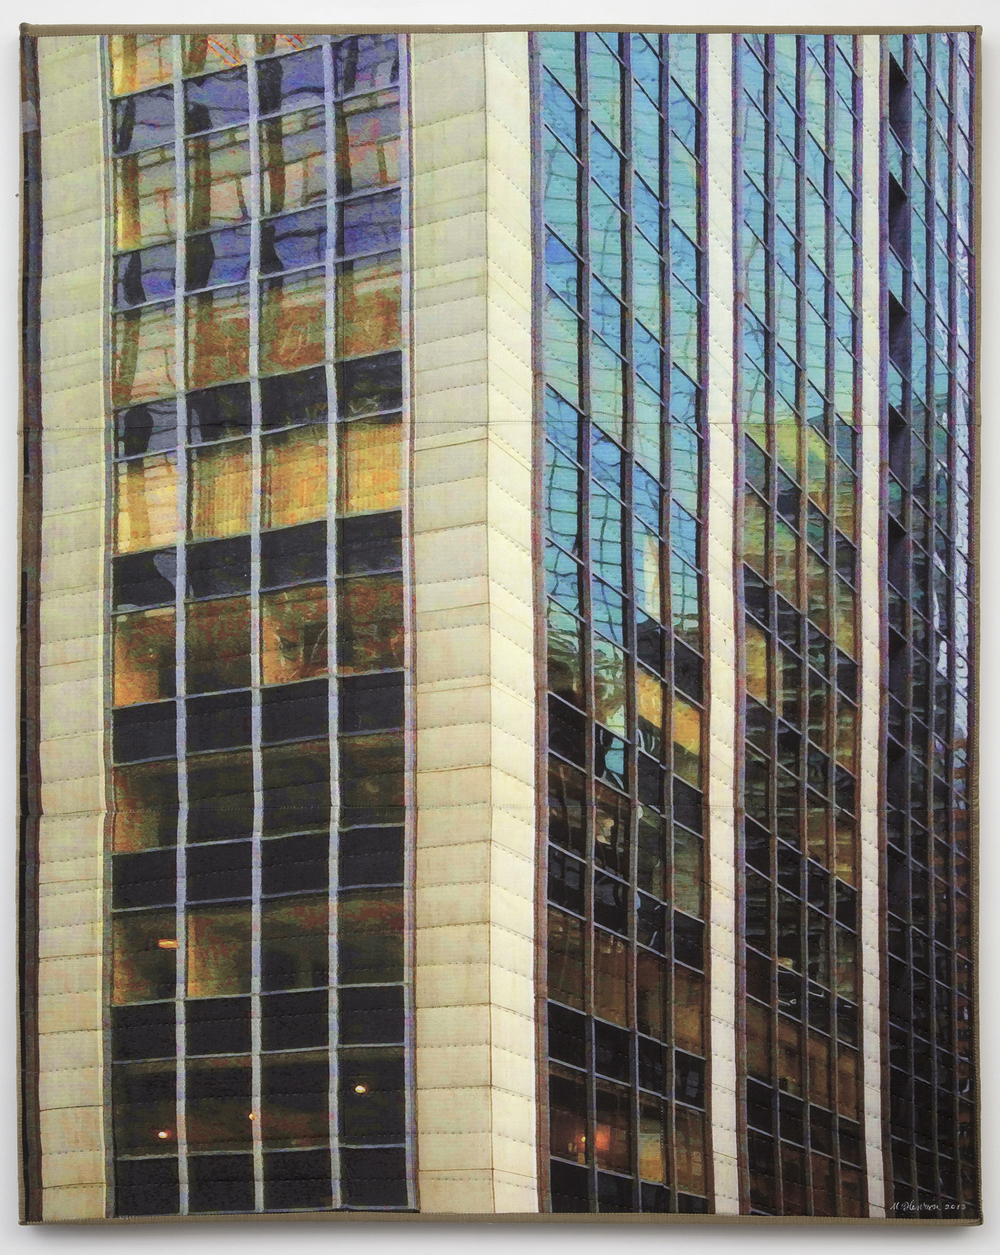 "2000-4. New York Windows 1340, 30""x24""x1"", mixed media on silk, pieced, hand quilted, gallery-wrapped stretched canvas"